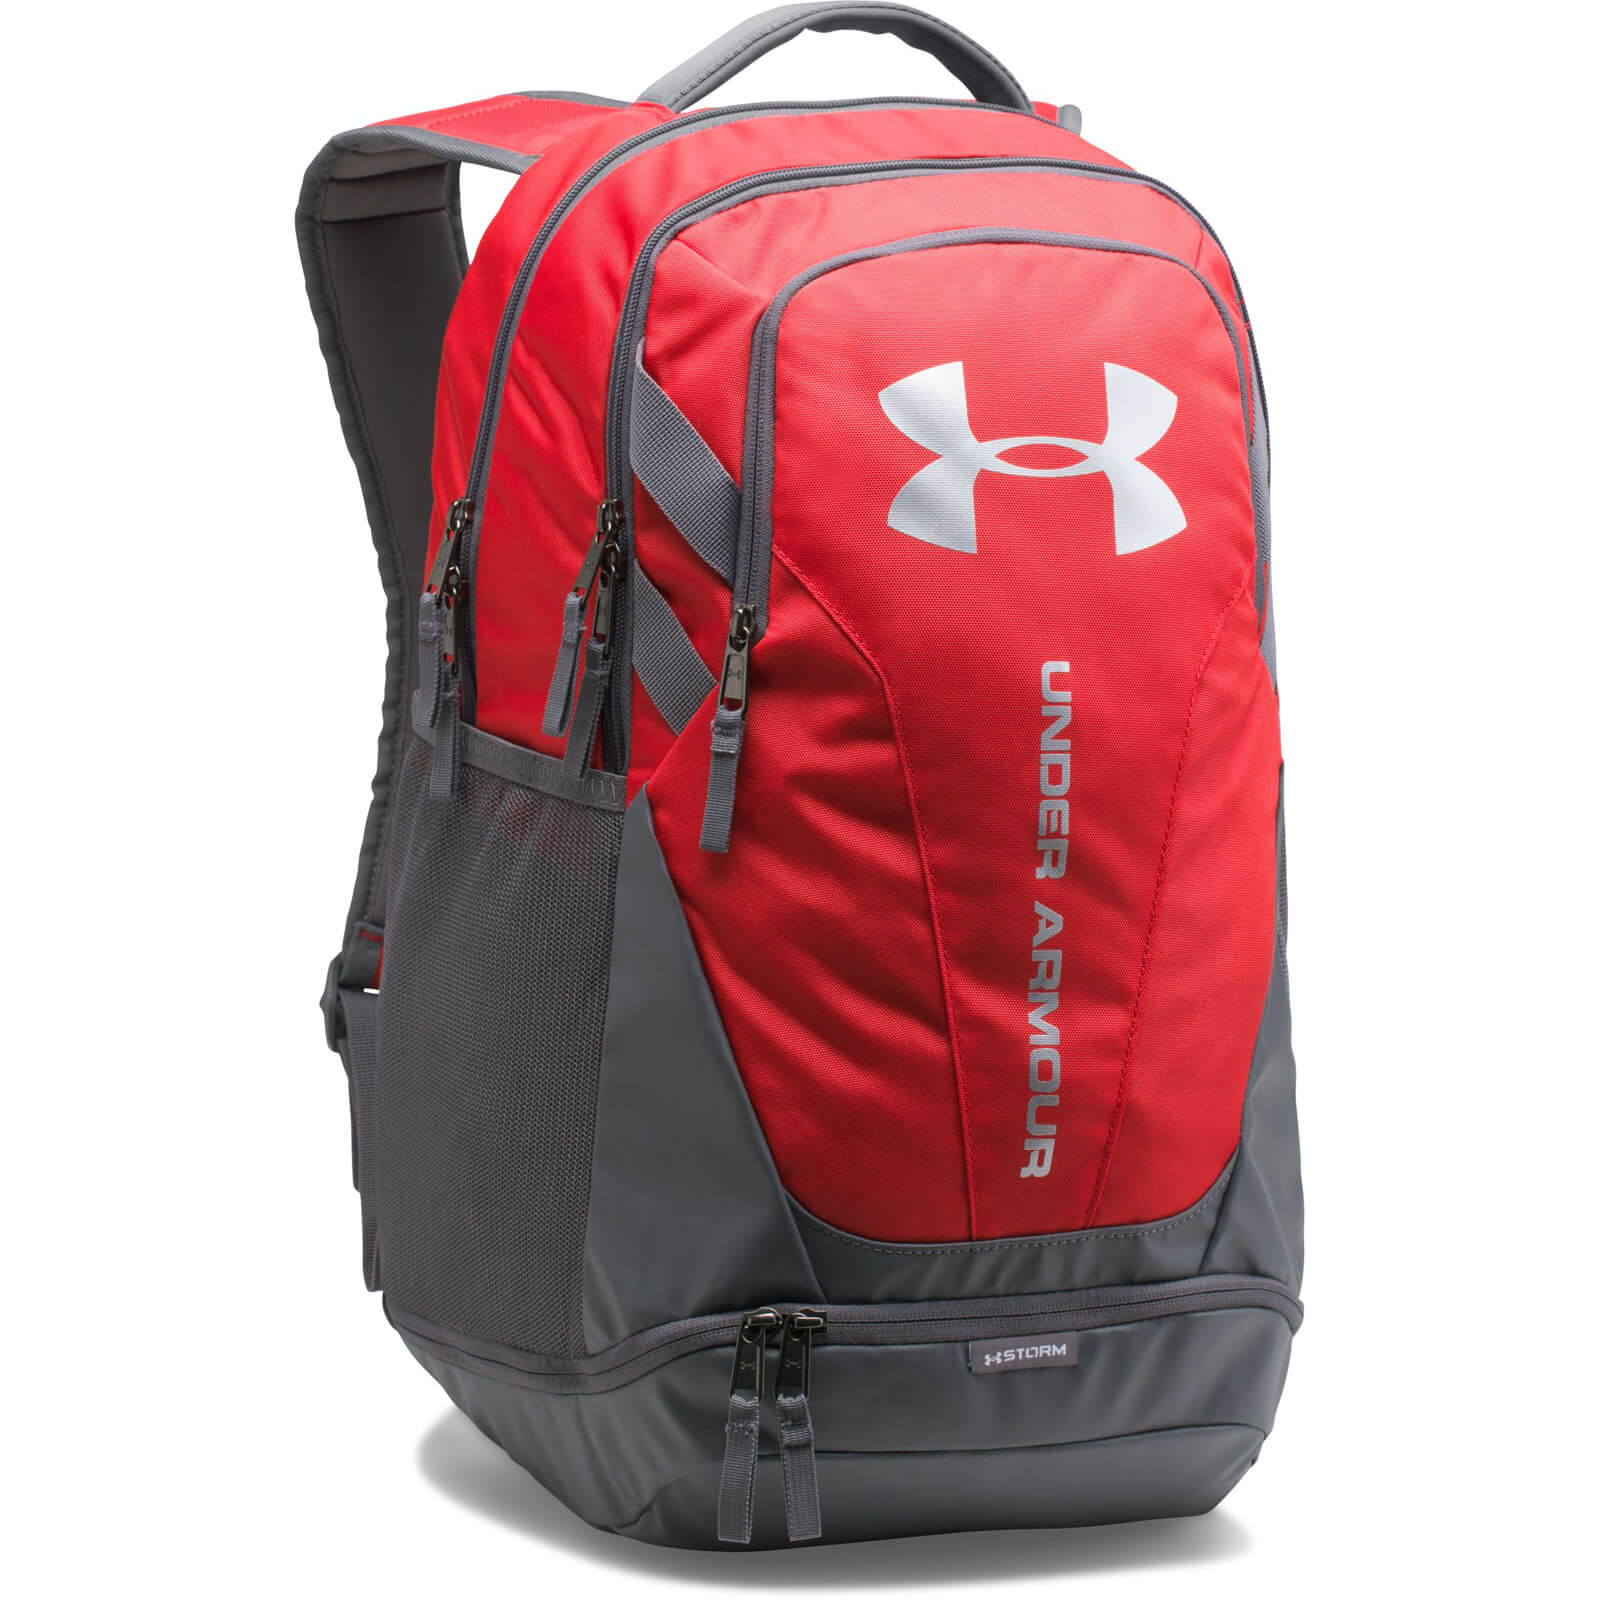 Under Armour Hustle 3.0 Backpack - Red